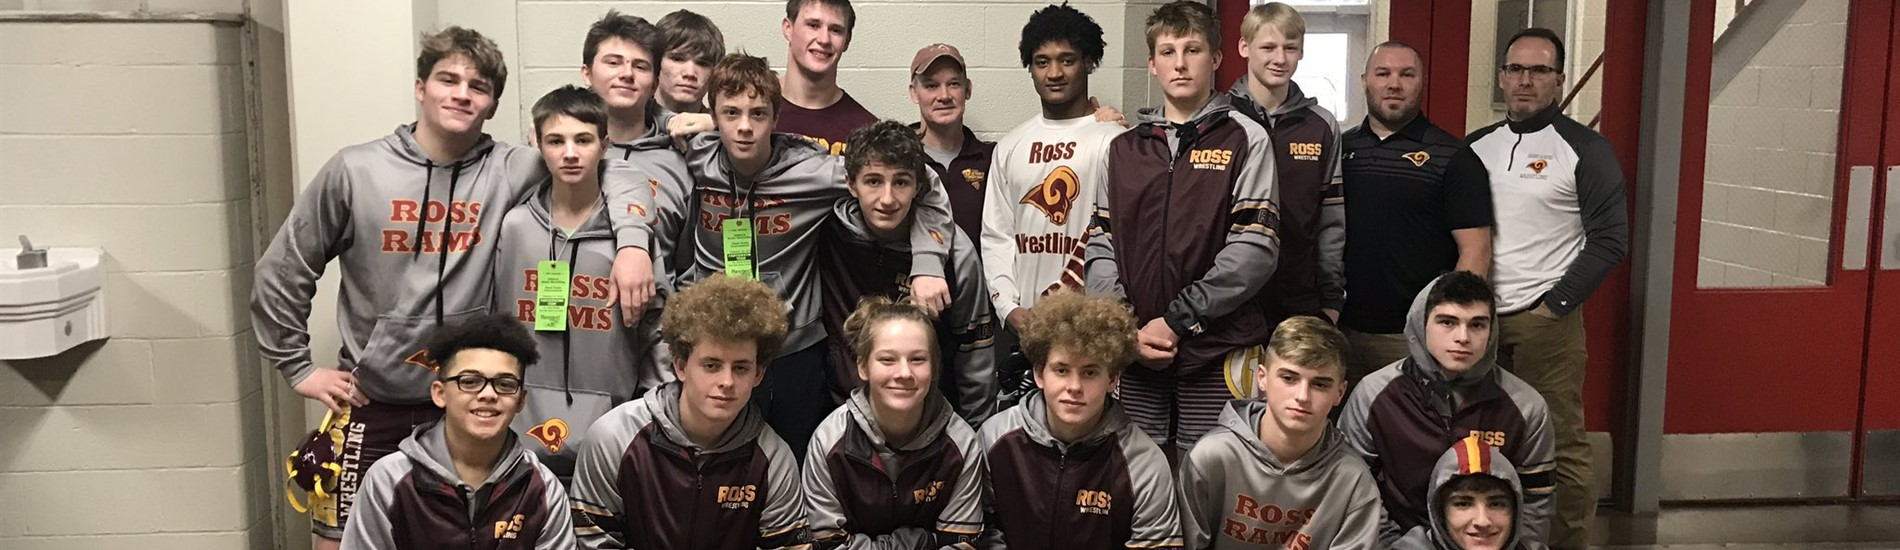 Ross Wrestling at 2020 Dual Team State Championship!